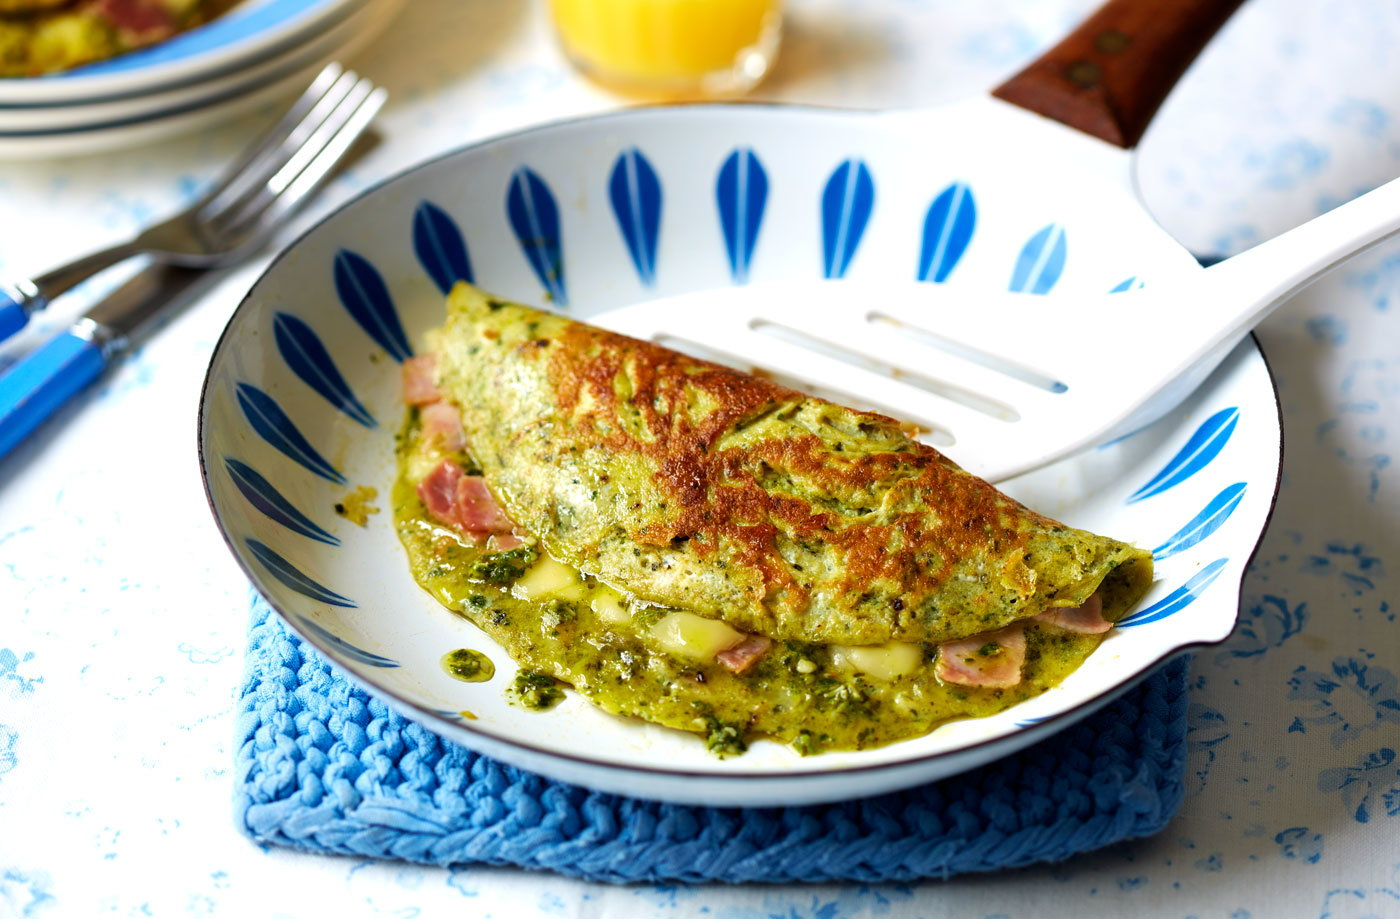 Green eggs and ham omelettes